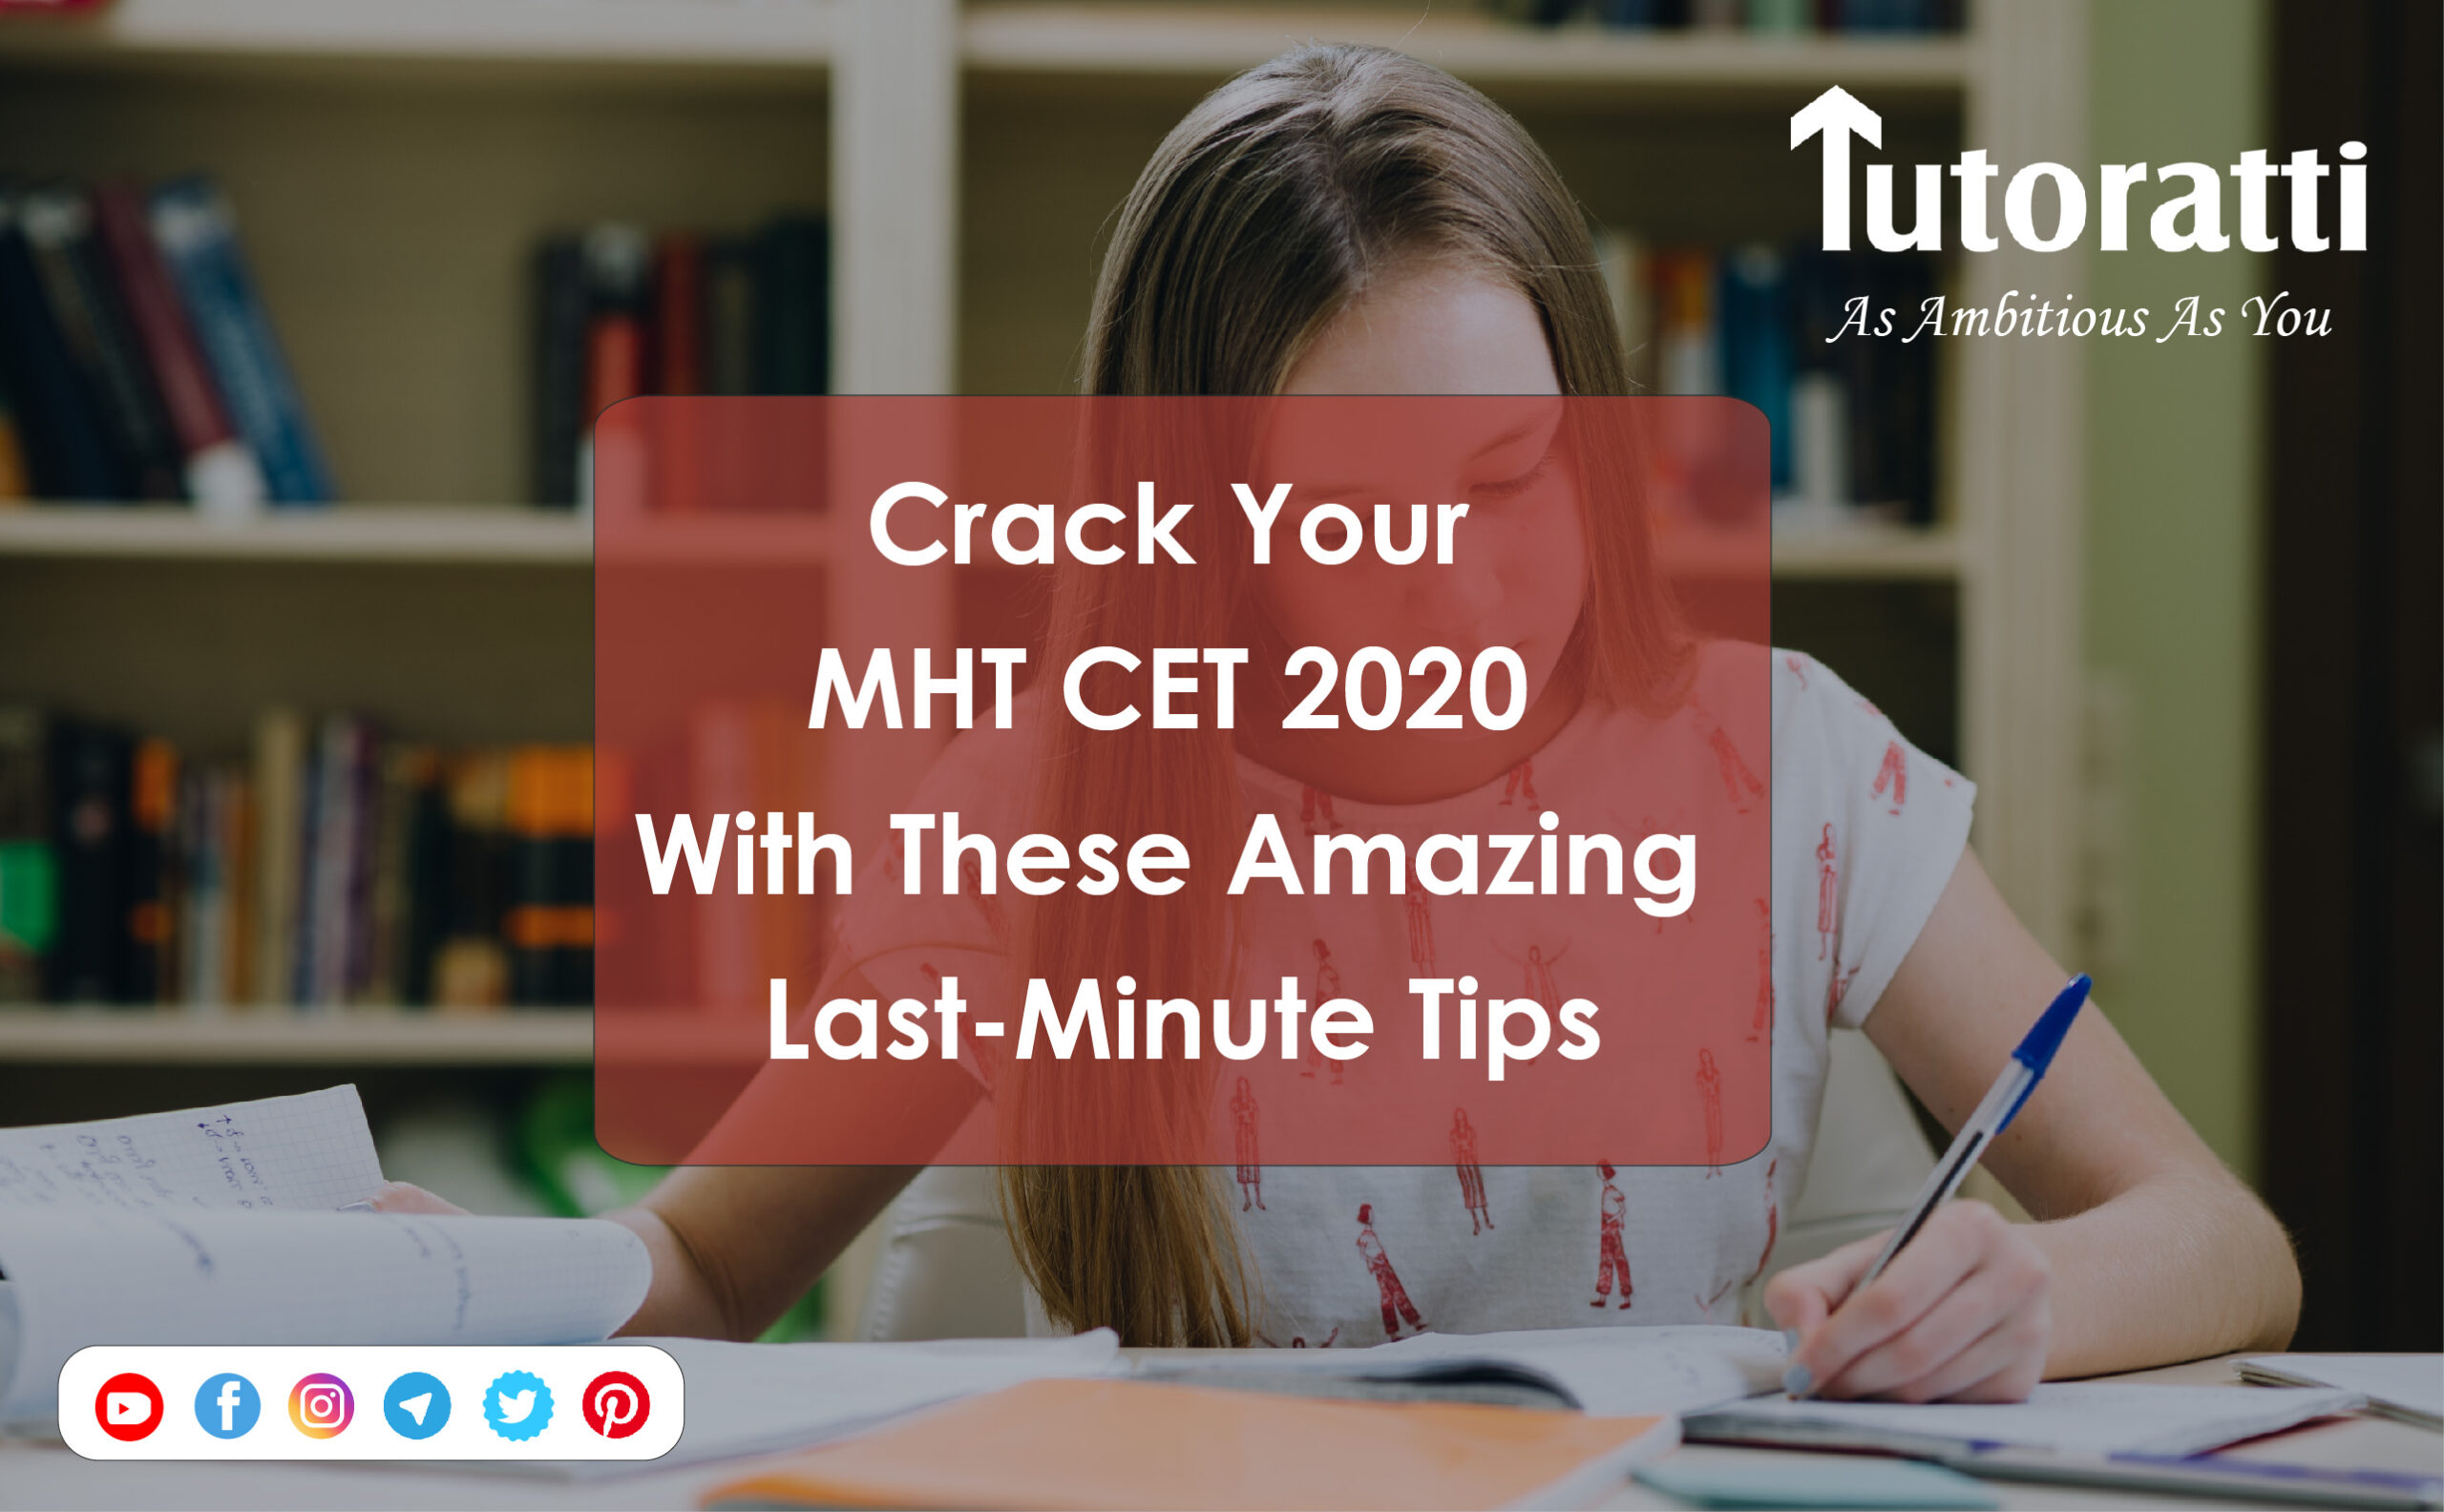 Crack Your MHT CET 2020 With These Amazing Last-Minute Tips